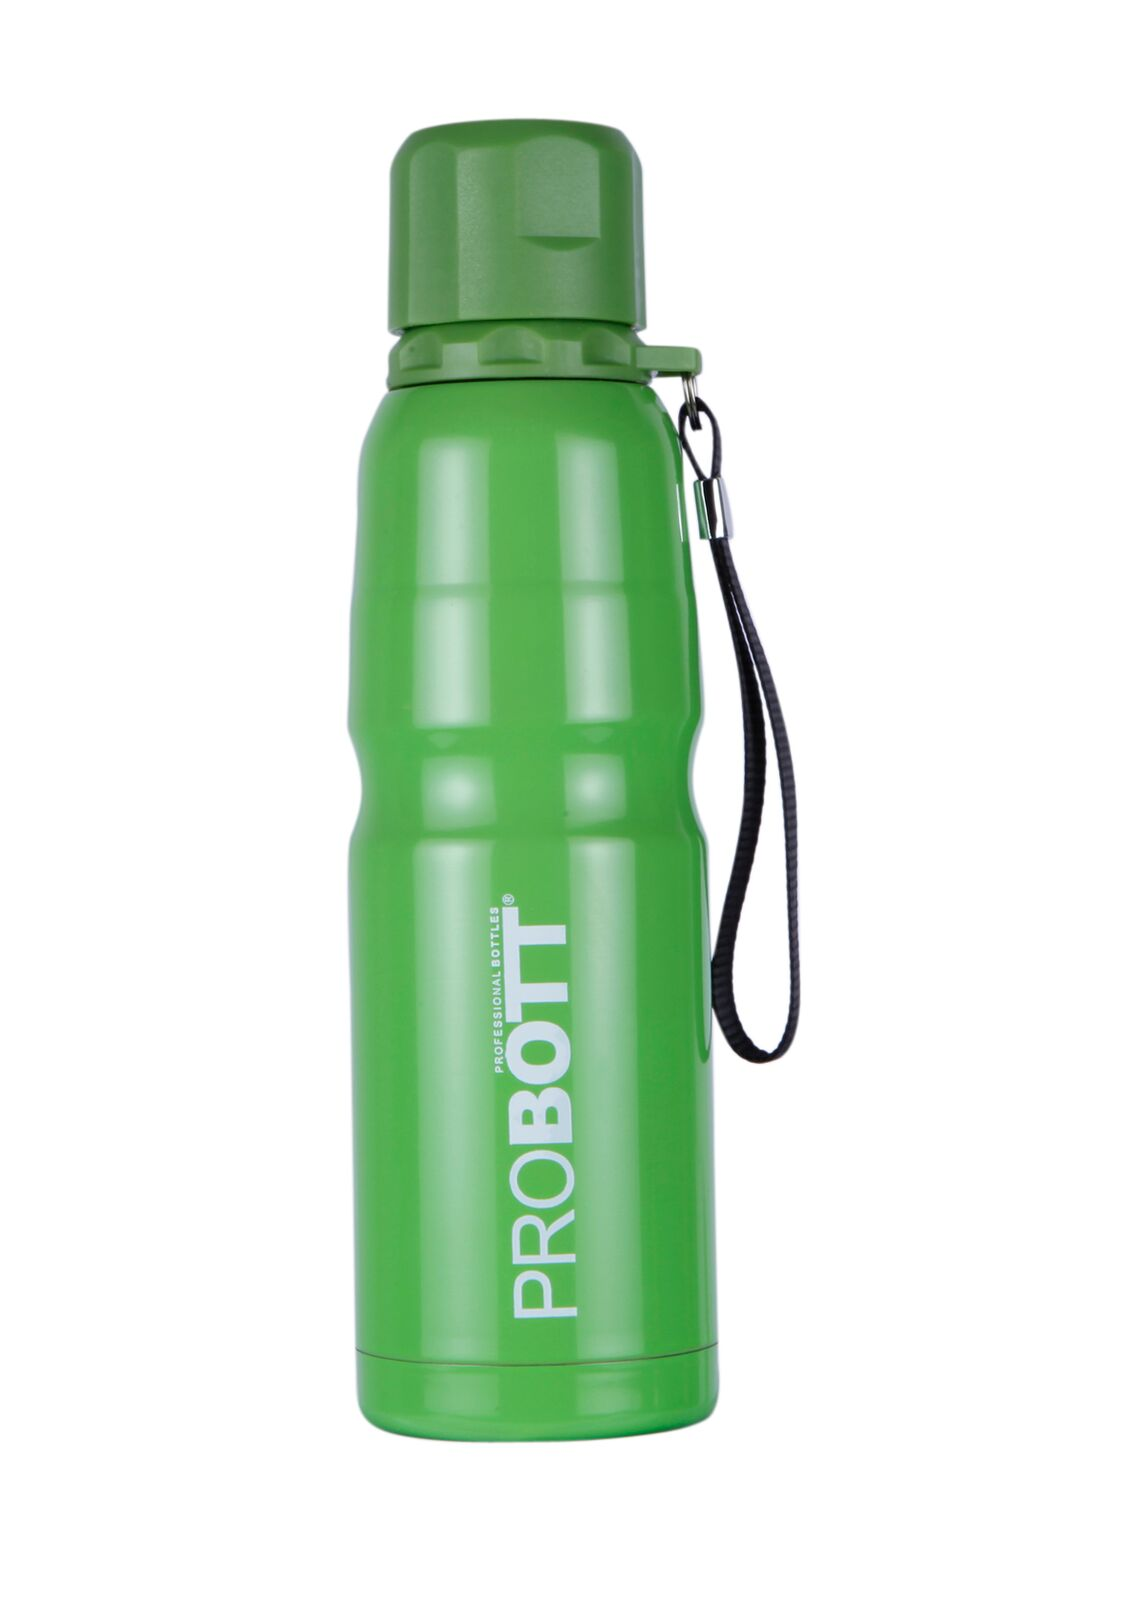 Probott Sport Bottle 500 Ml With Sling Stainless steel Thermoware in Blue / Pink / Green / Dark Green Colour by Probott